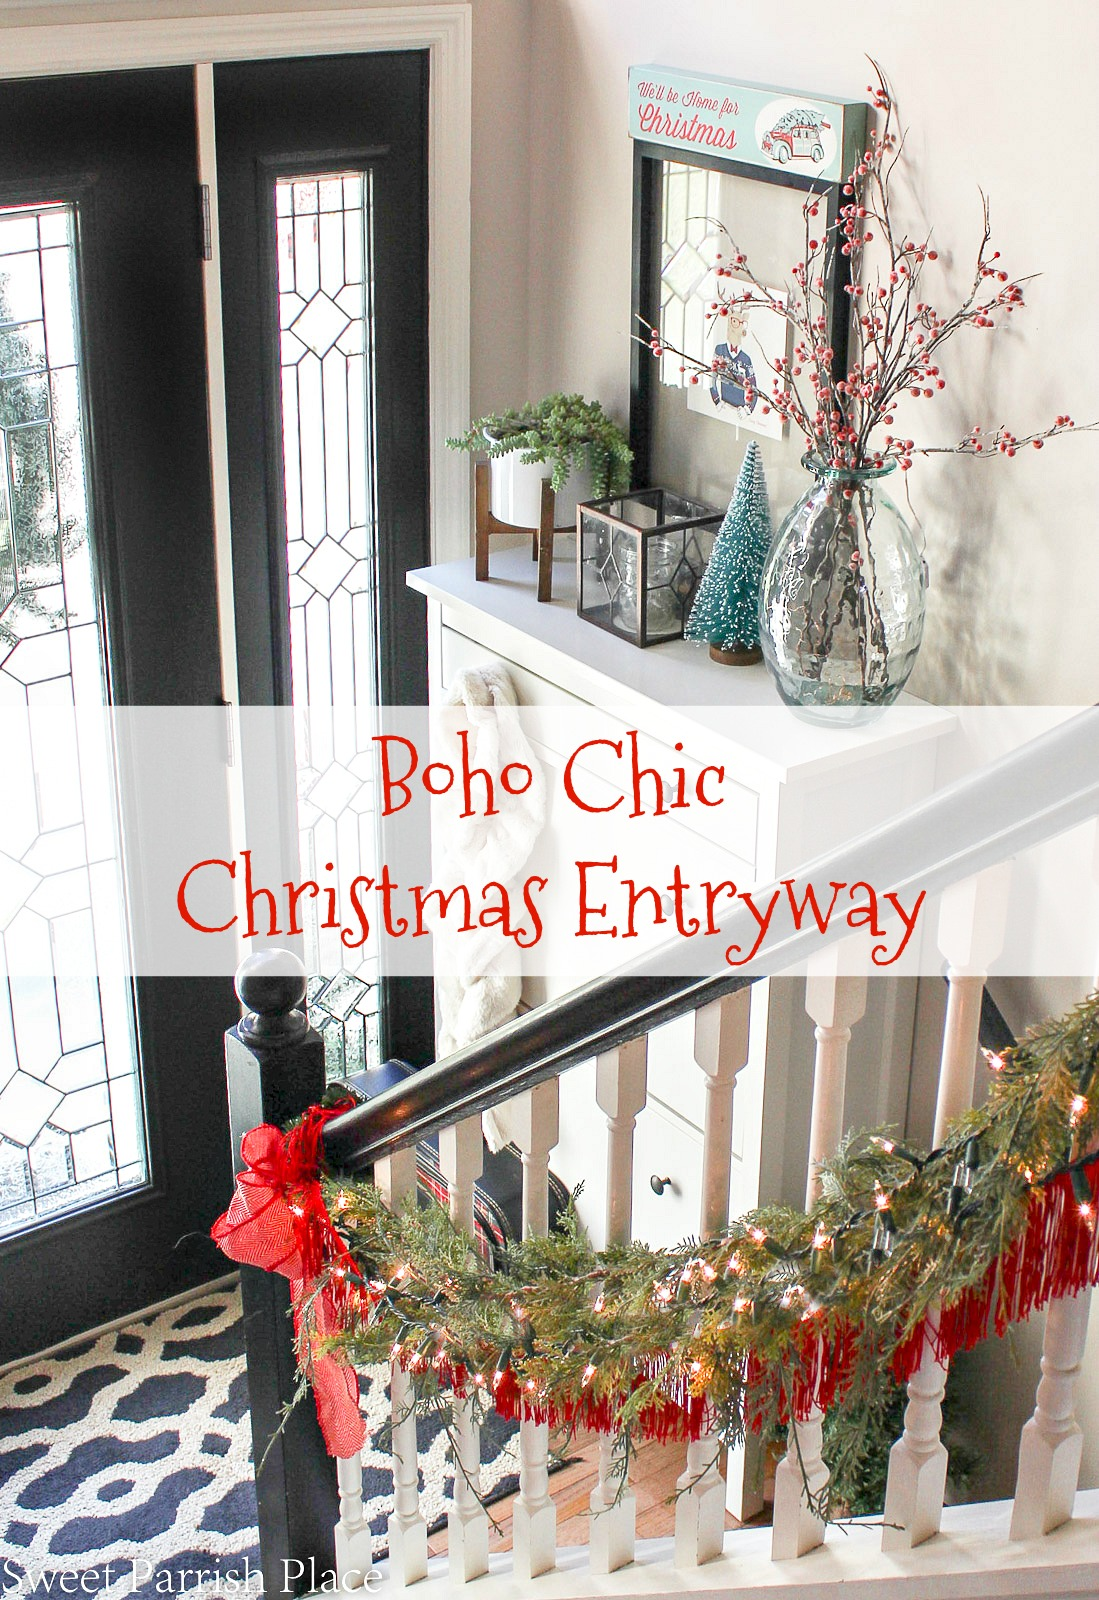 boho chic Christmas entryway